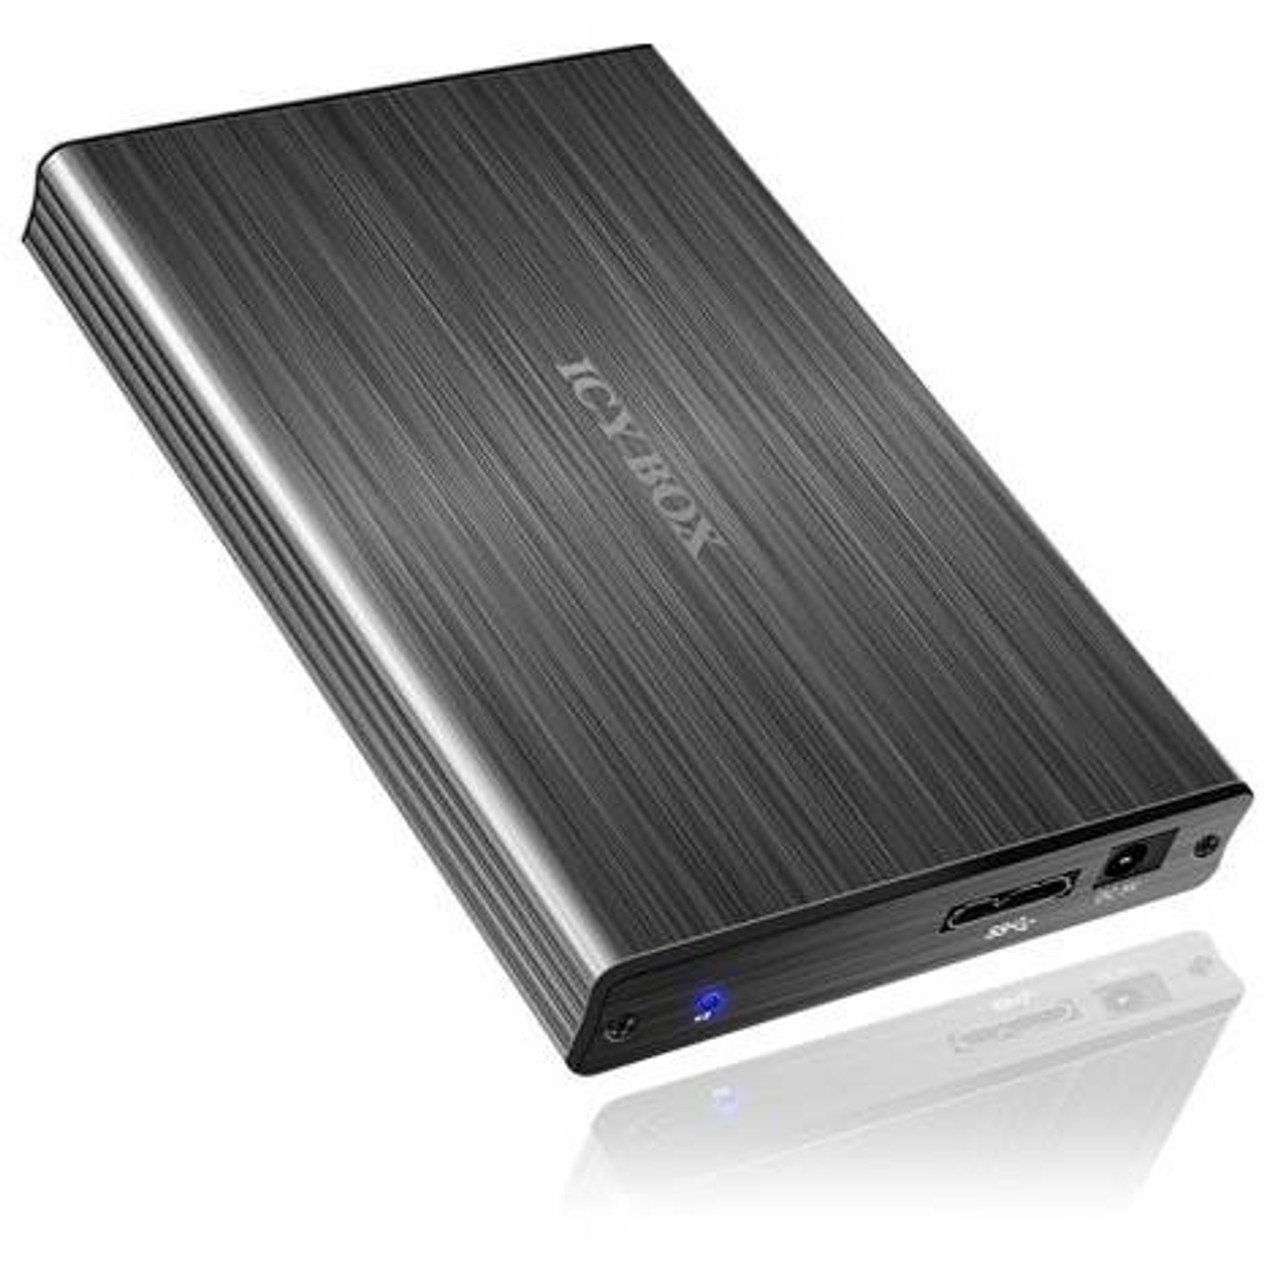 Image for ICY BOX IB-231STU3-G 2.5in Hard Drive Enclosure w/ USB 3.0 CX Computer Superstore